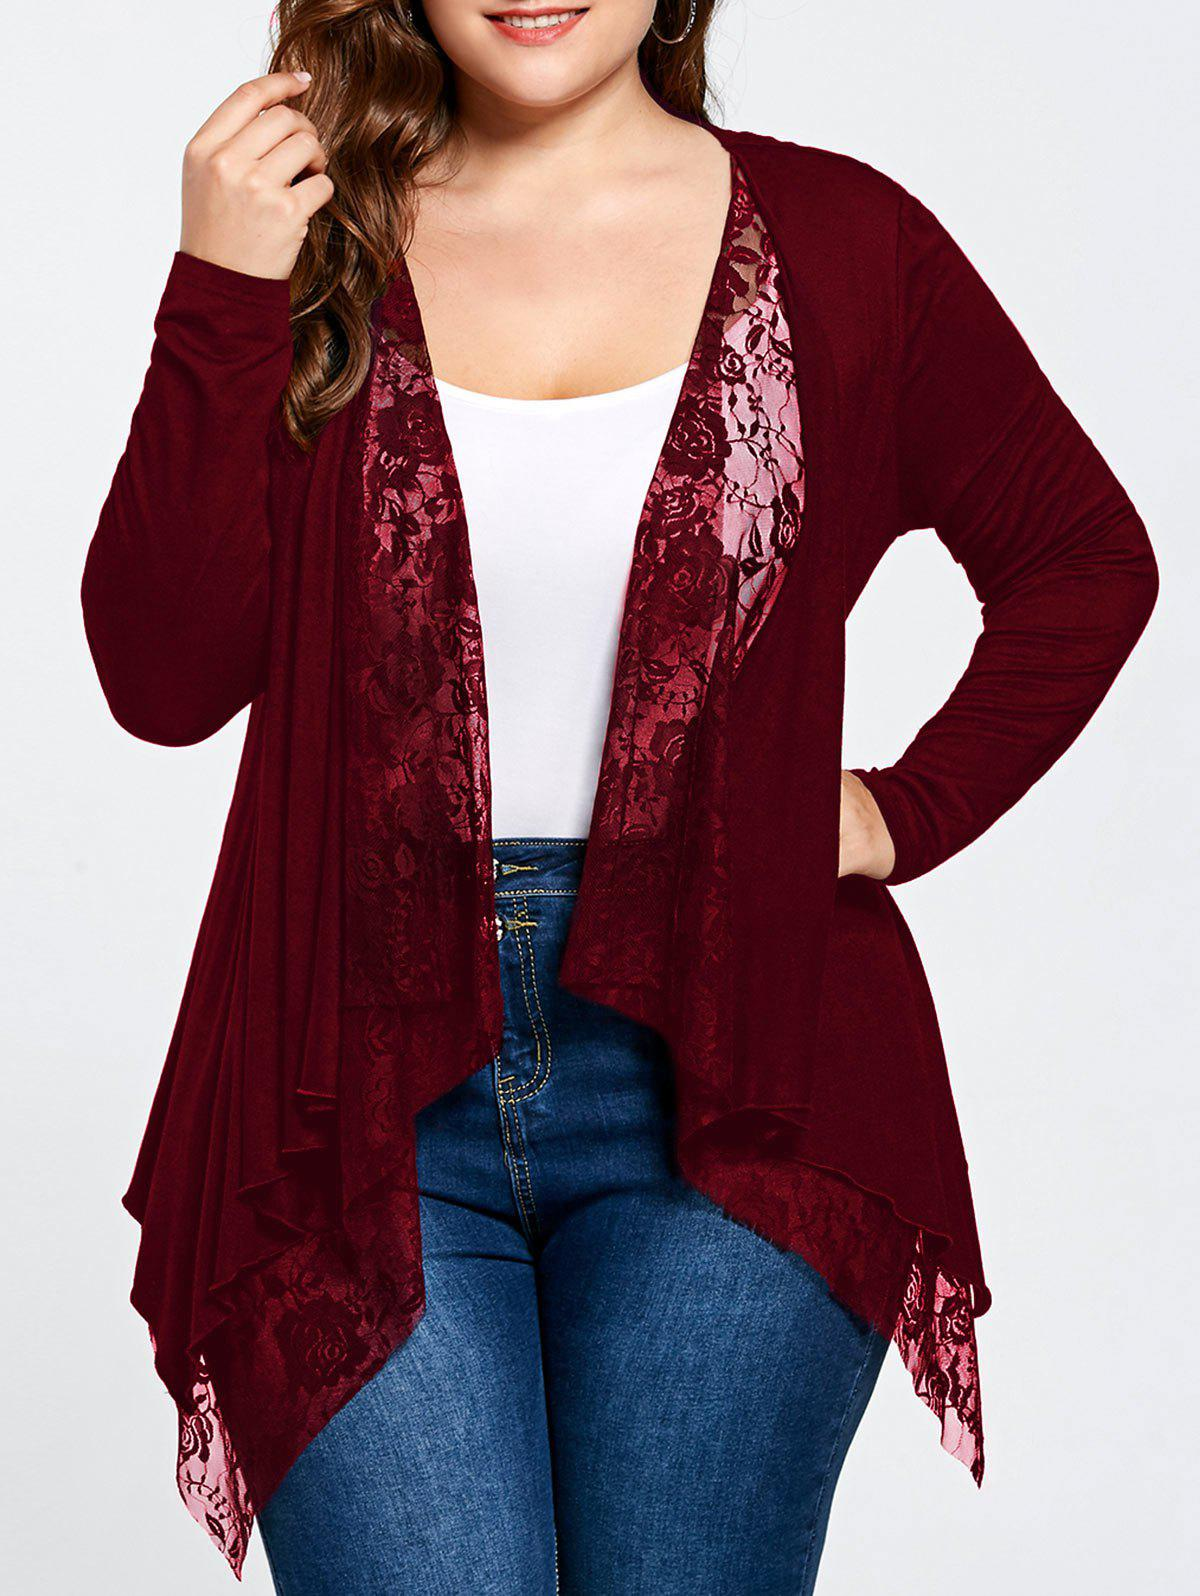 Plus Size Lace Trim Open Front CardiganWOMEN<br><br>Size: 5XL; Color: WINE RED; Type: Cardigans; Material: Rayon,Spandex; Sleeve Length: Full; Collar: Collarless; Style: Fashion; Season: Fall,Spring,Summer; Pattern Type: Solid; Weight: 0.3400kg; Package Contents: 1 x Cardigan;